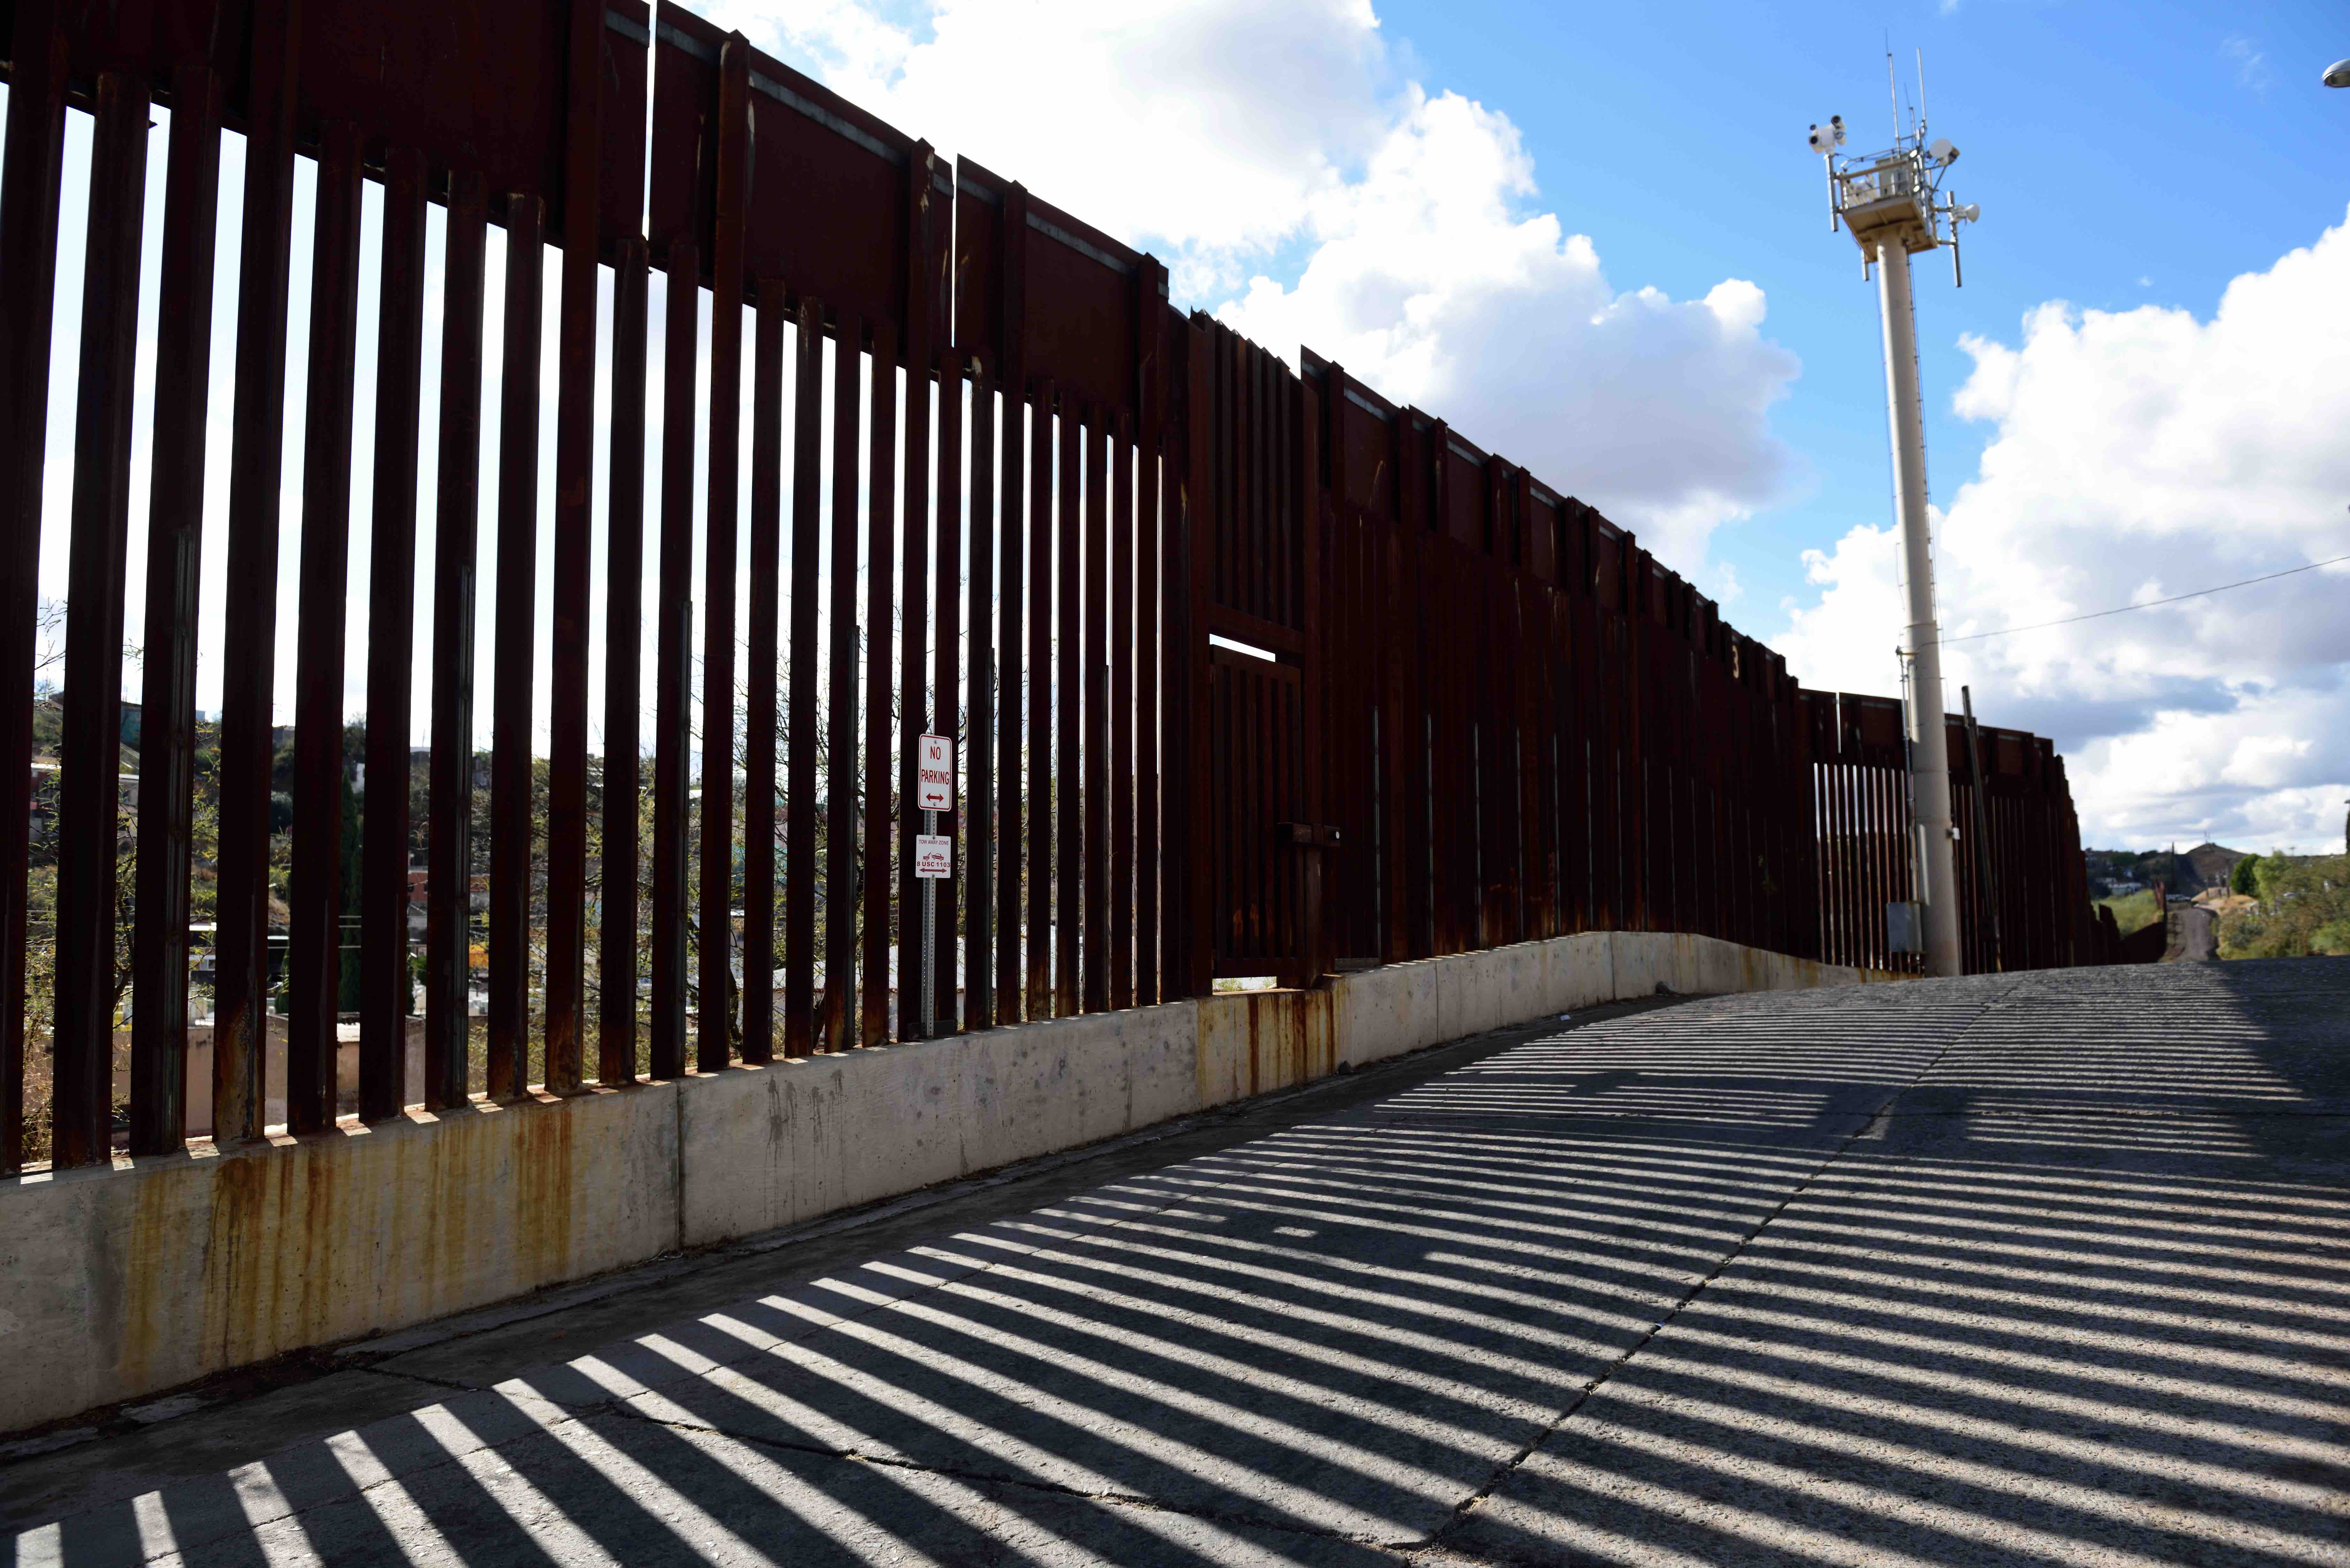 Asylum Seekers Take Over Bridge Along the Texas-Mexico Border